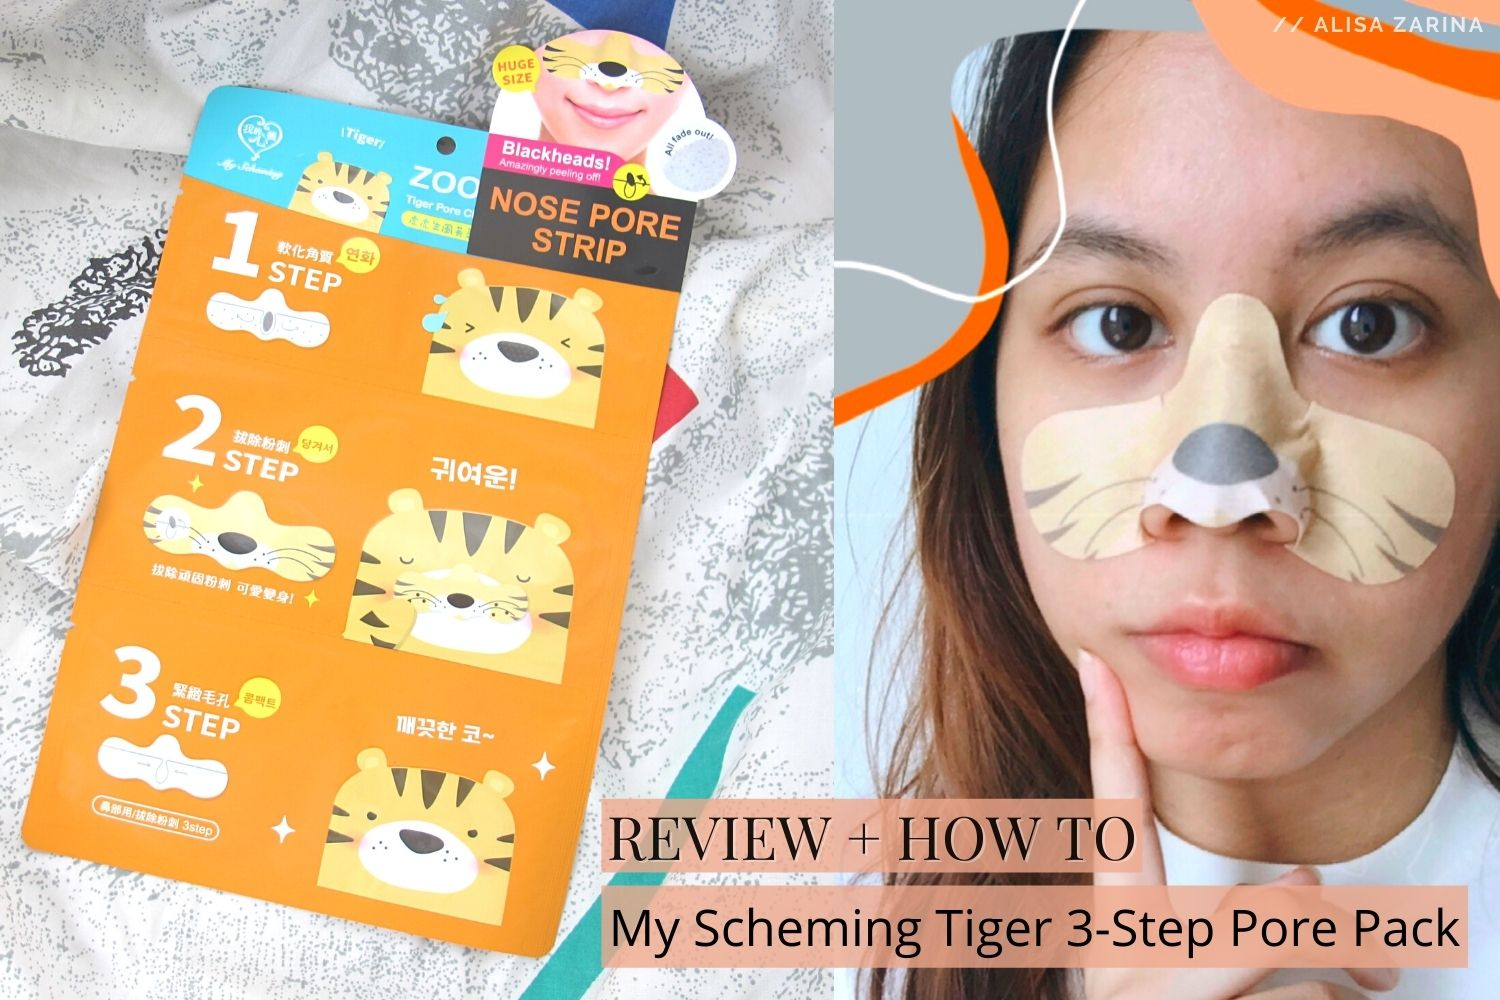 REVIEW + HOW TO | My Scheming Pore Cleansing 3 Step Pack